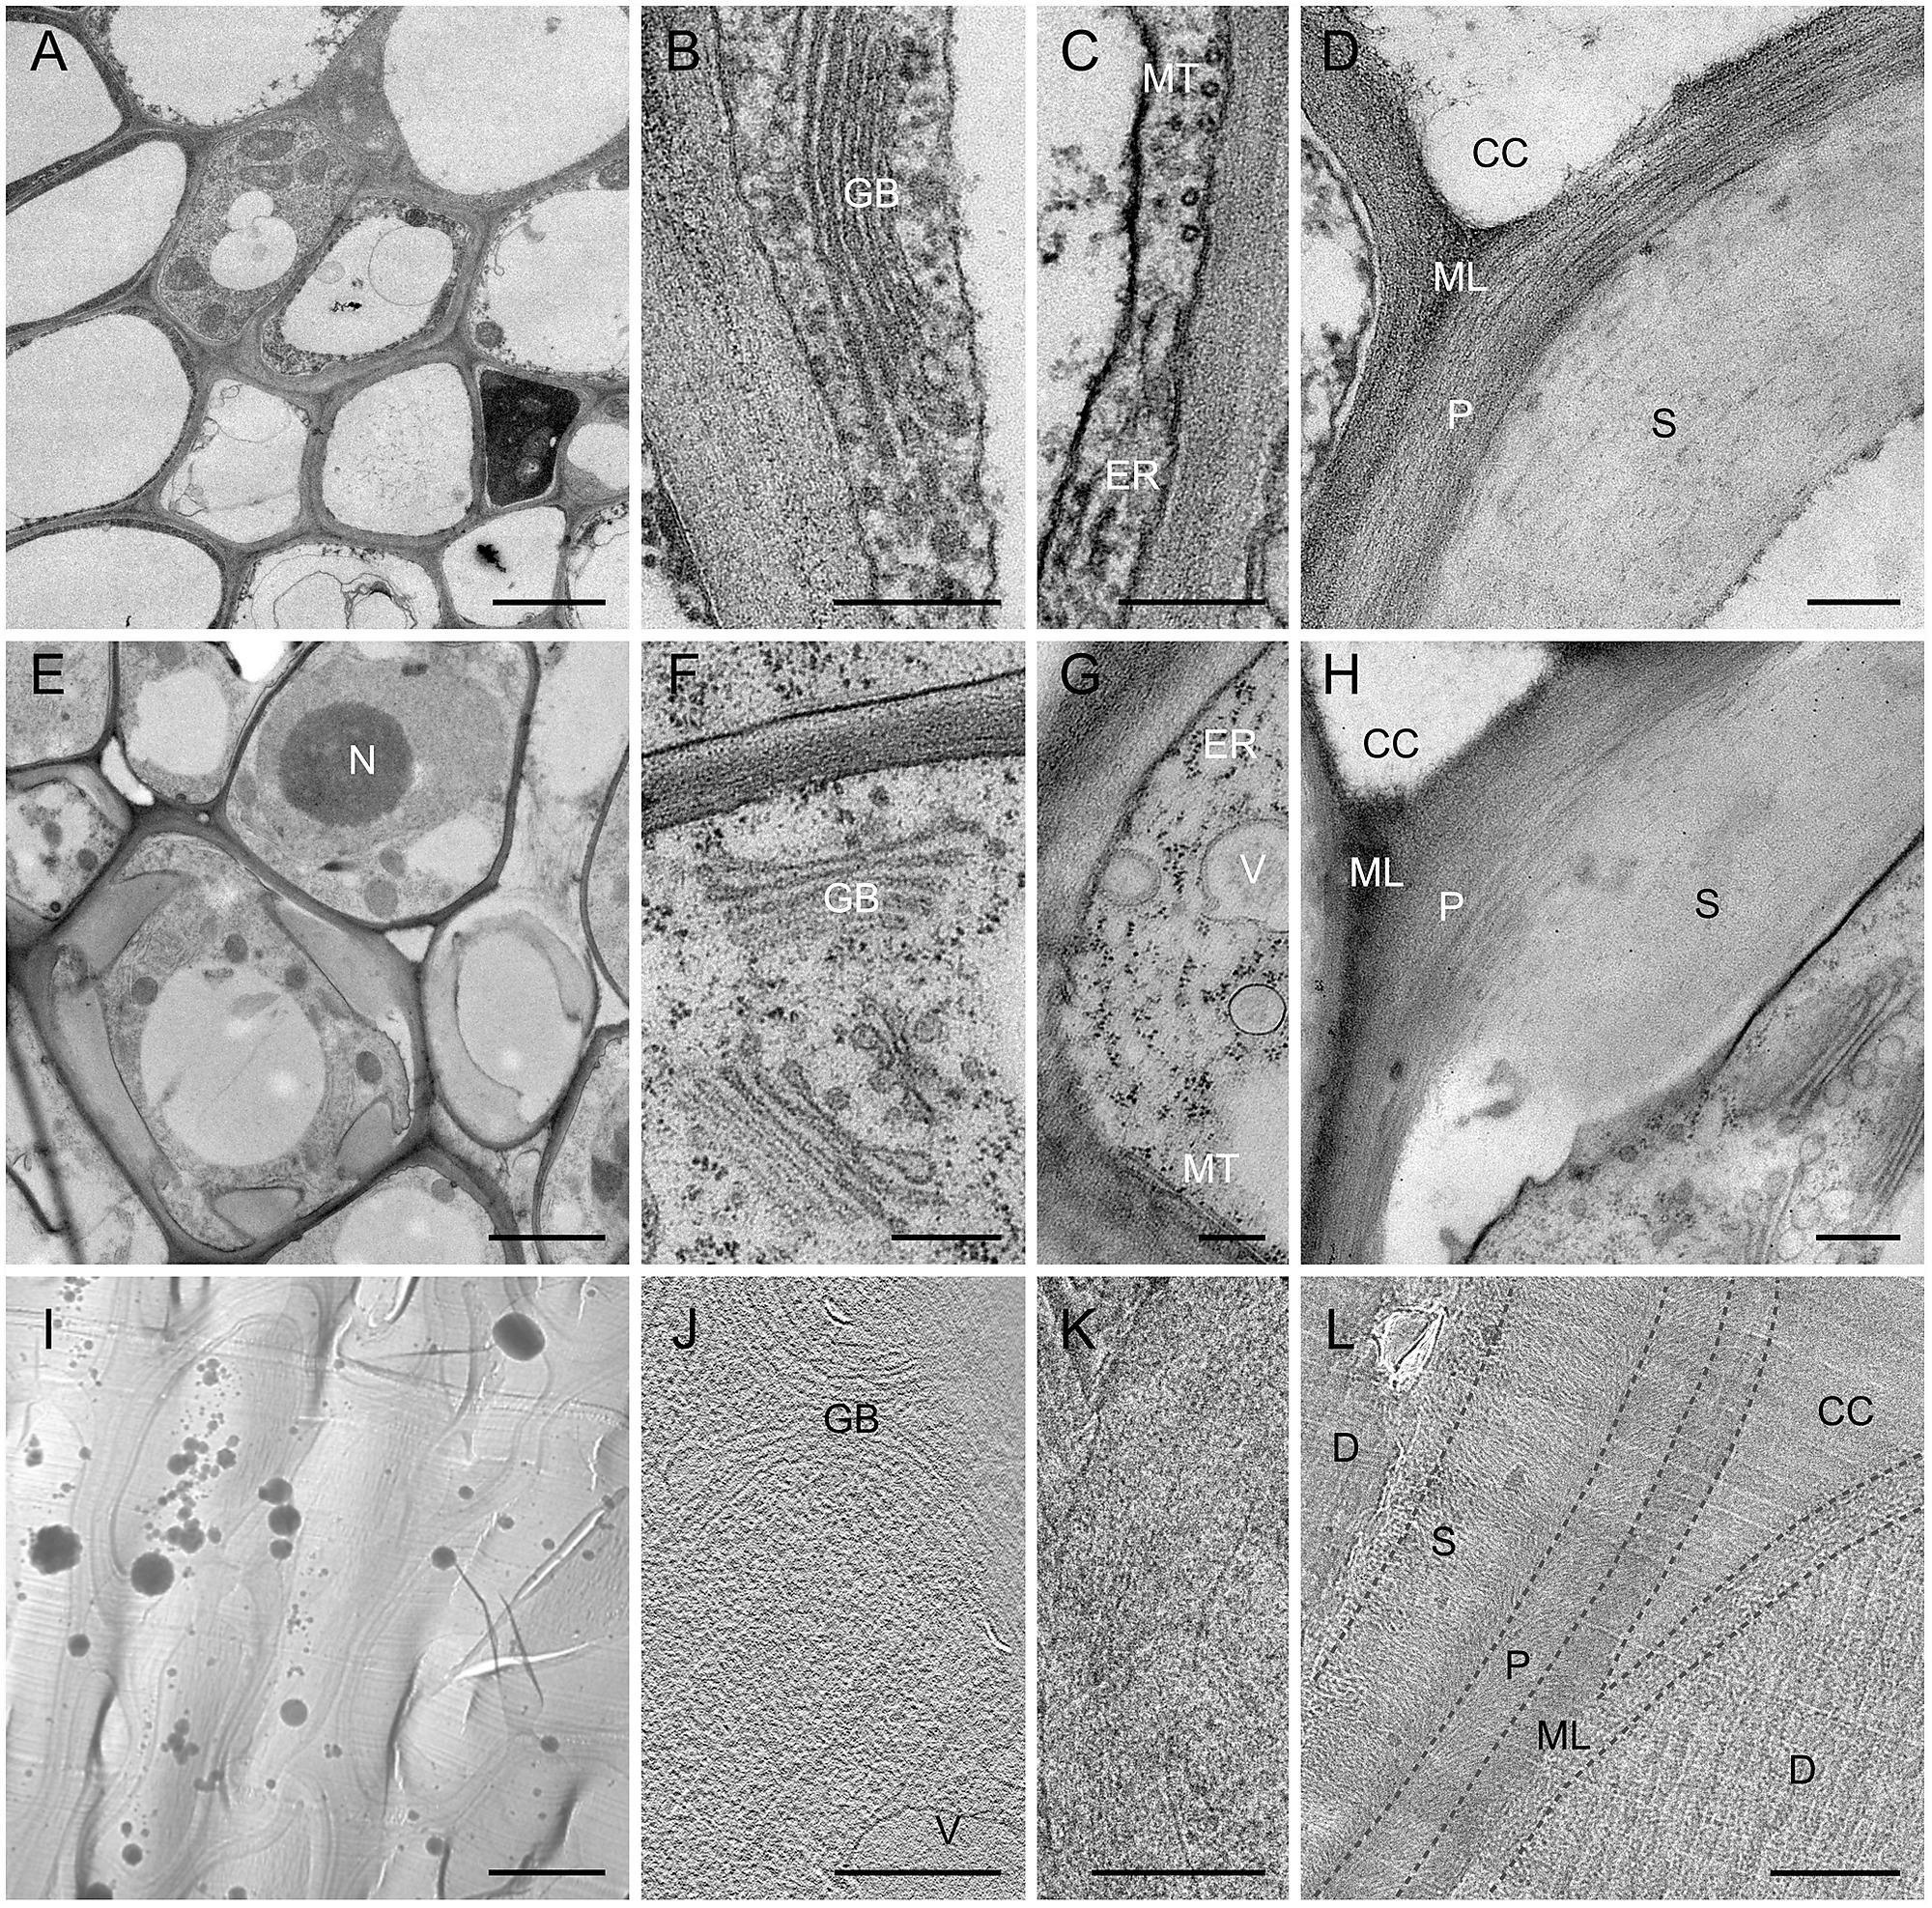 Plant Cell Transmission Electron Microscope Images ...